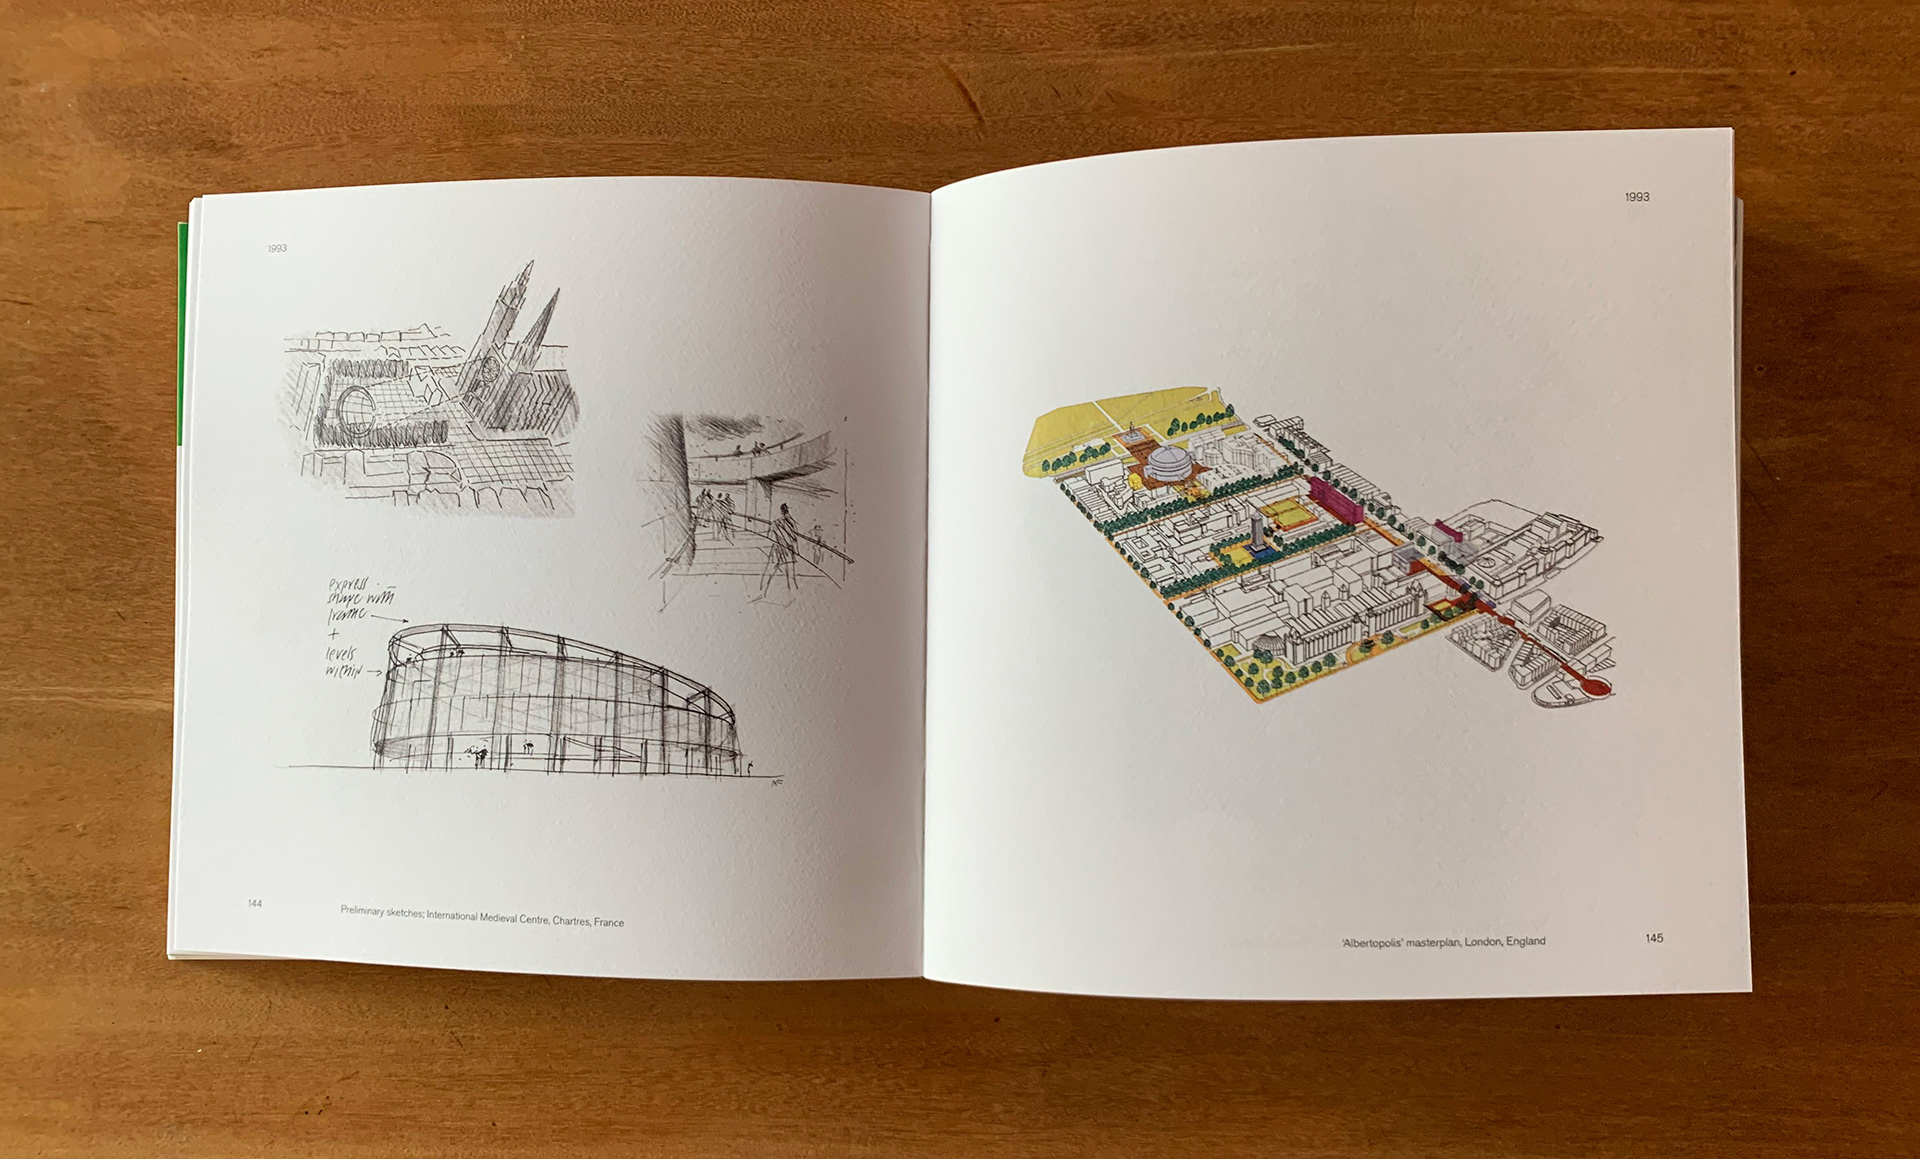 (L-R): Preliminary sketches; International Medieval Centre, Chartres, France and Albertopolis' masterplan, London, England | Portfolio | Foster + Partners | Julius Wiedemann |STIRworld